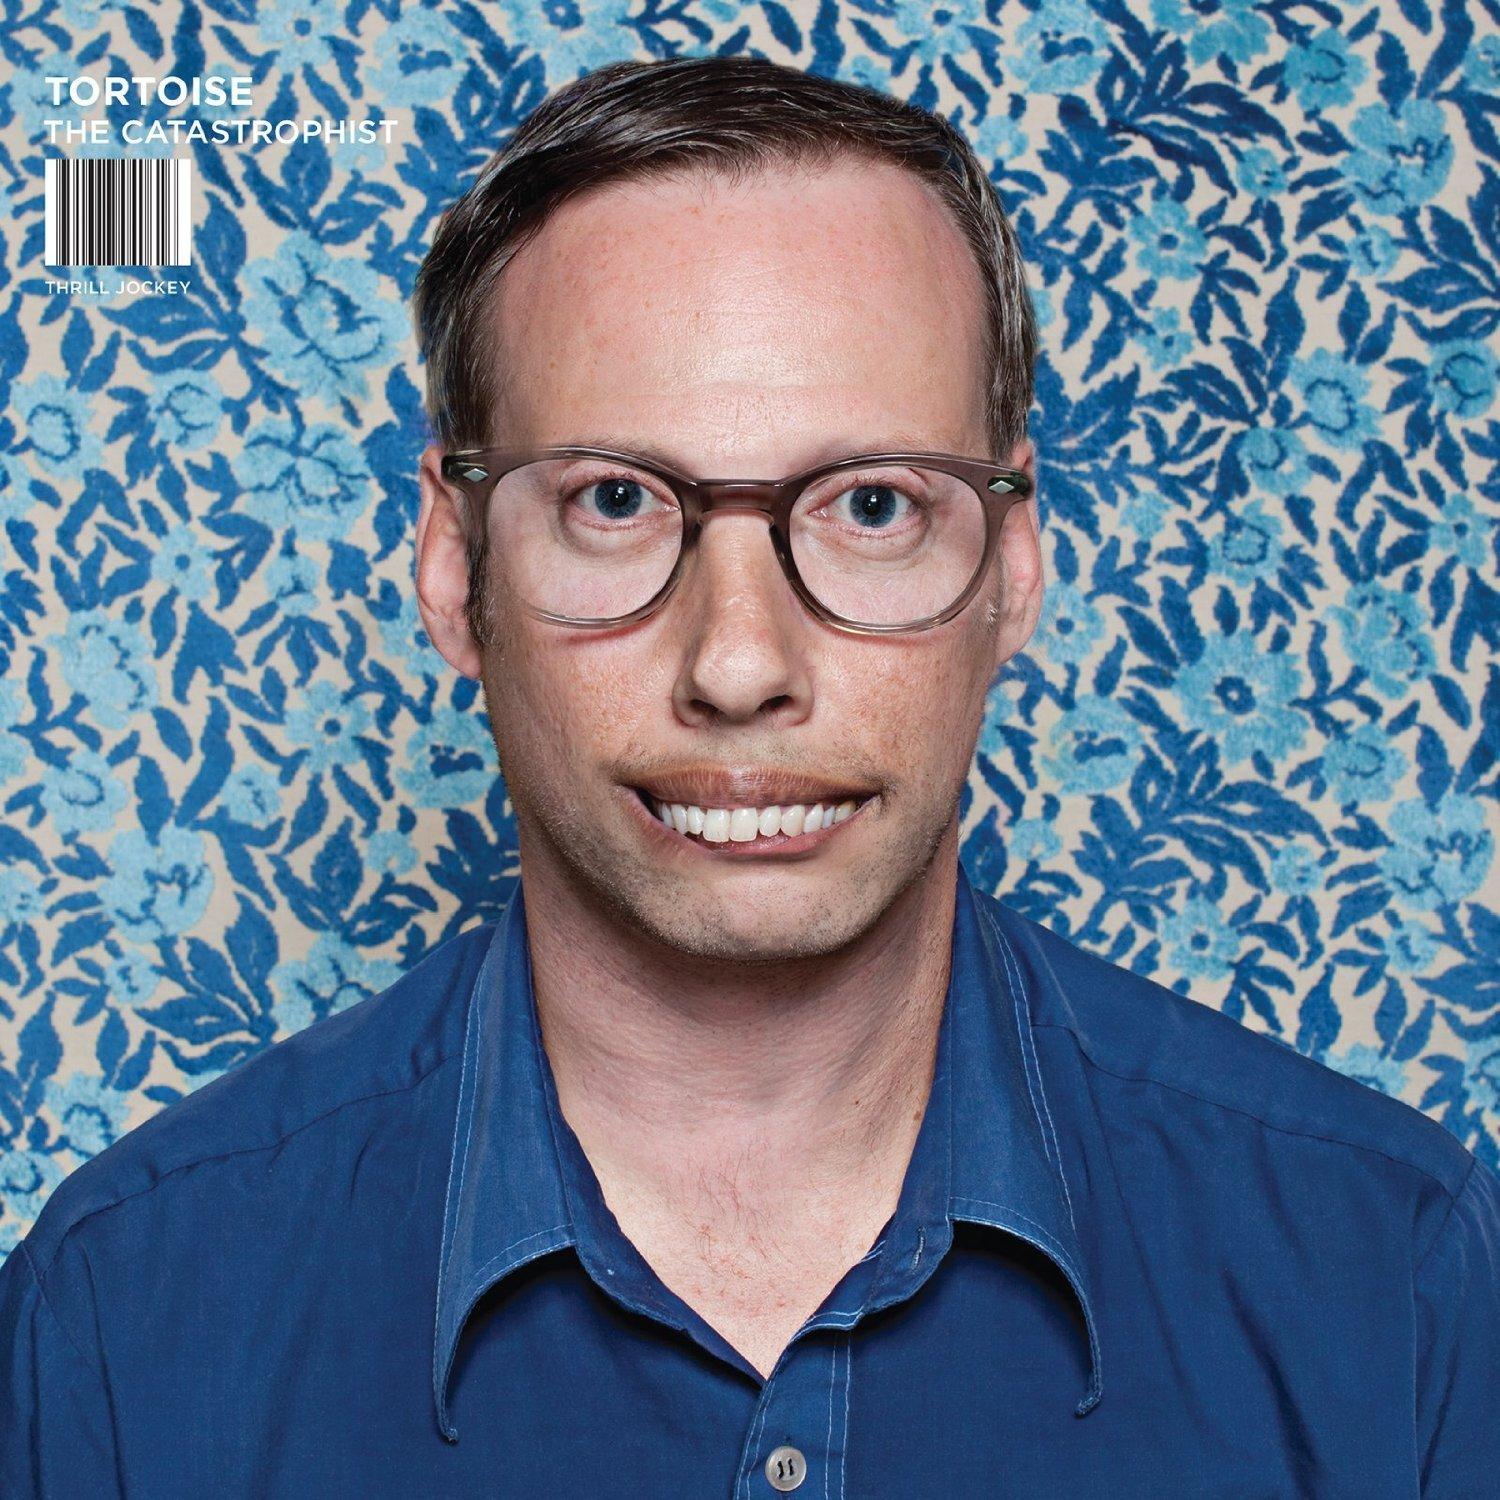 'The Catastrophist' by Tortoise album review by Gregory Adams.